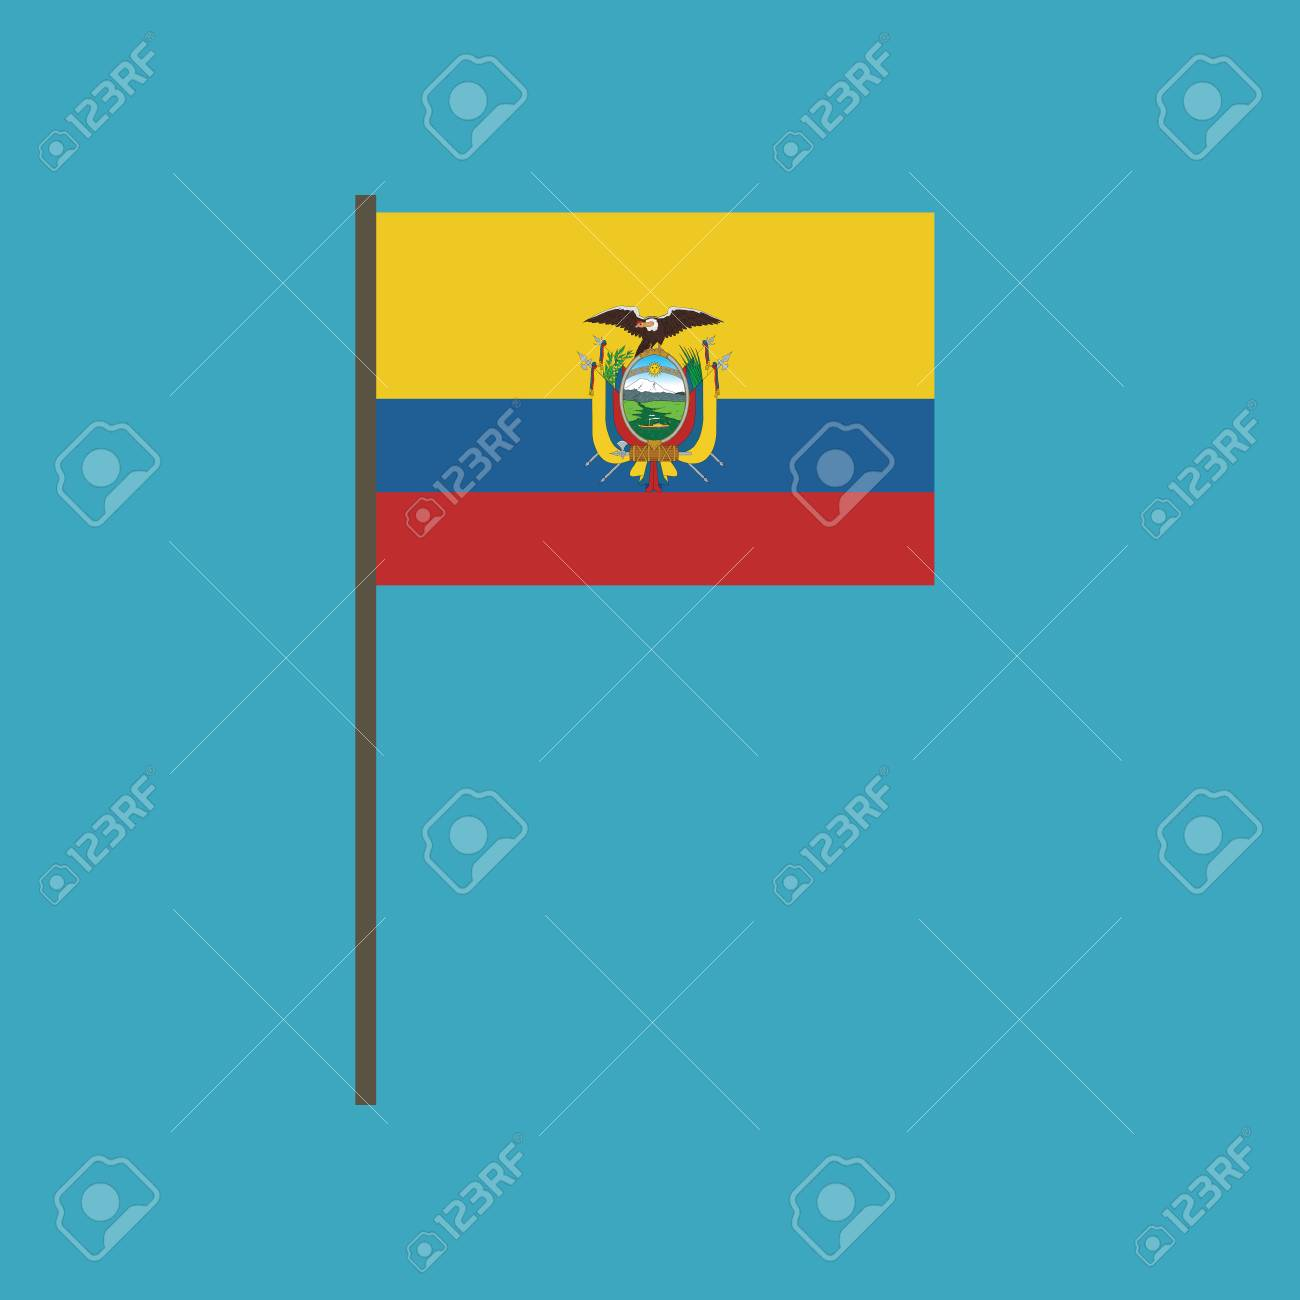 Ecuador flag icon in flat design. Independence day or National day holiday concept. - 112314421